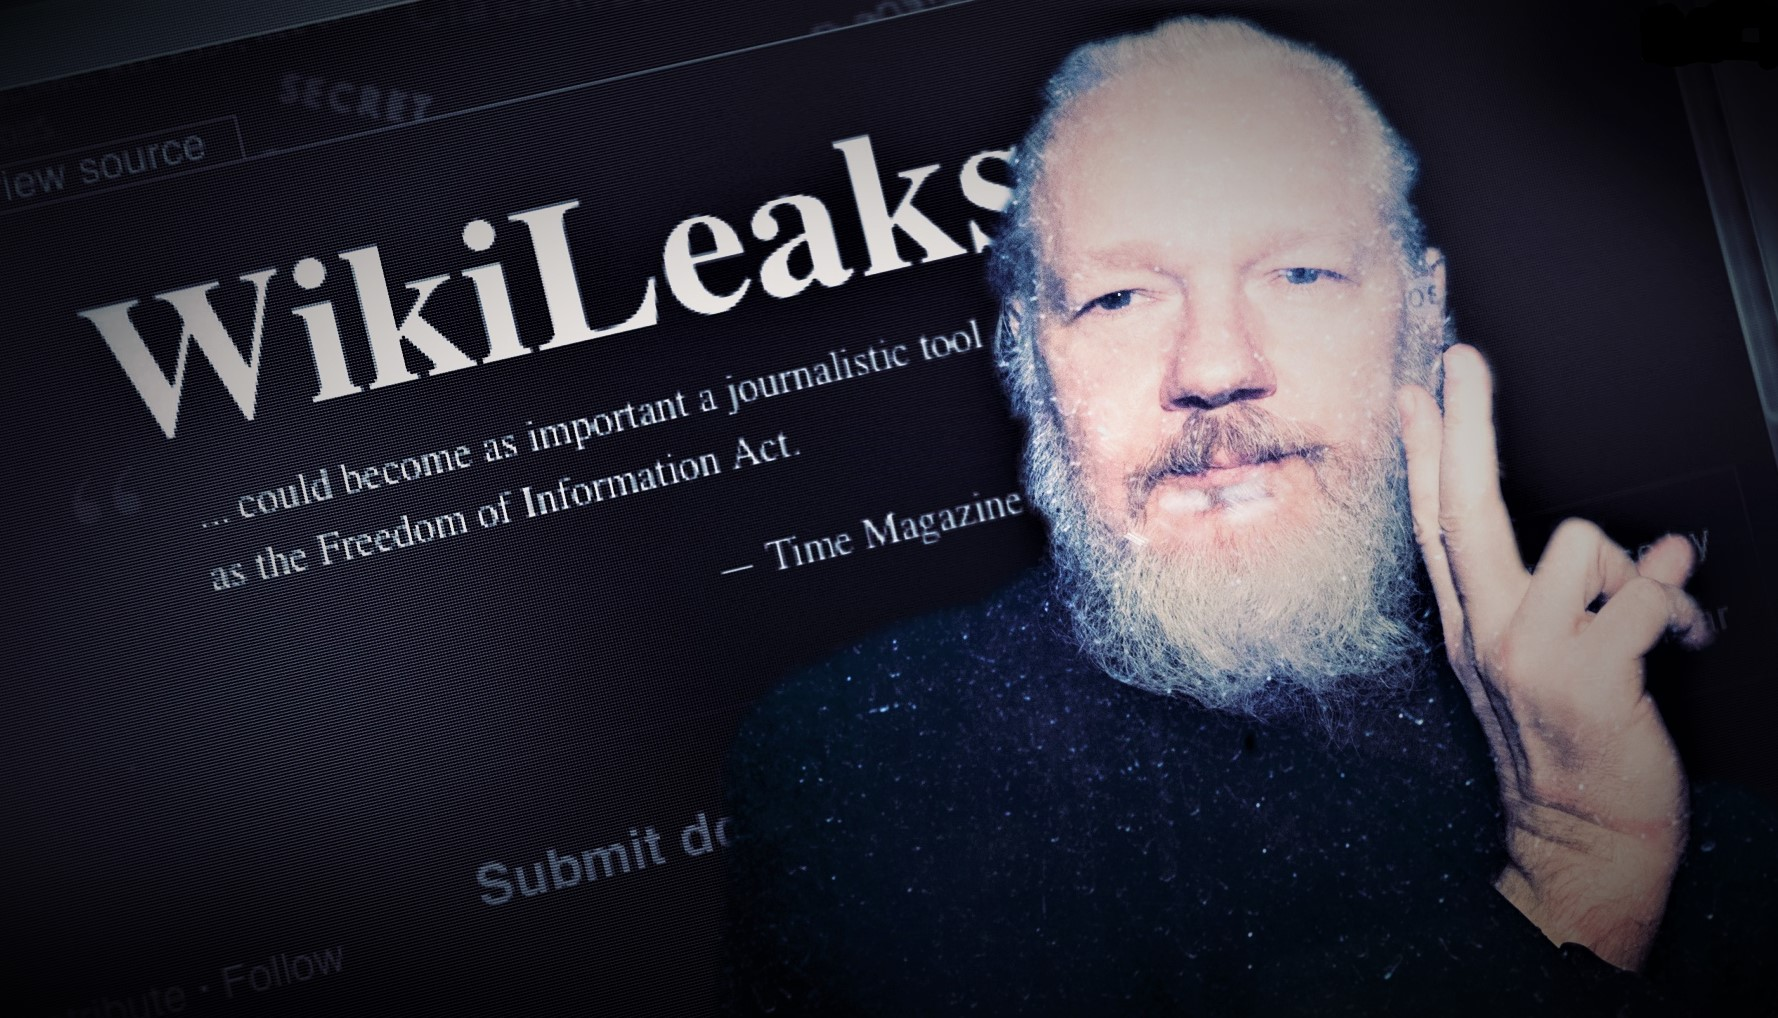 Julian Assange, una vida que se apaga lentamente (Video)